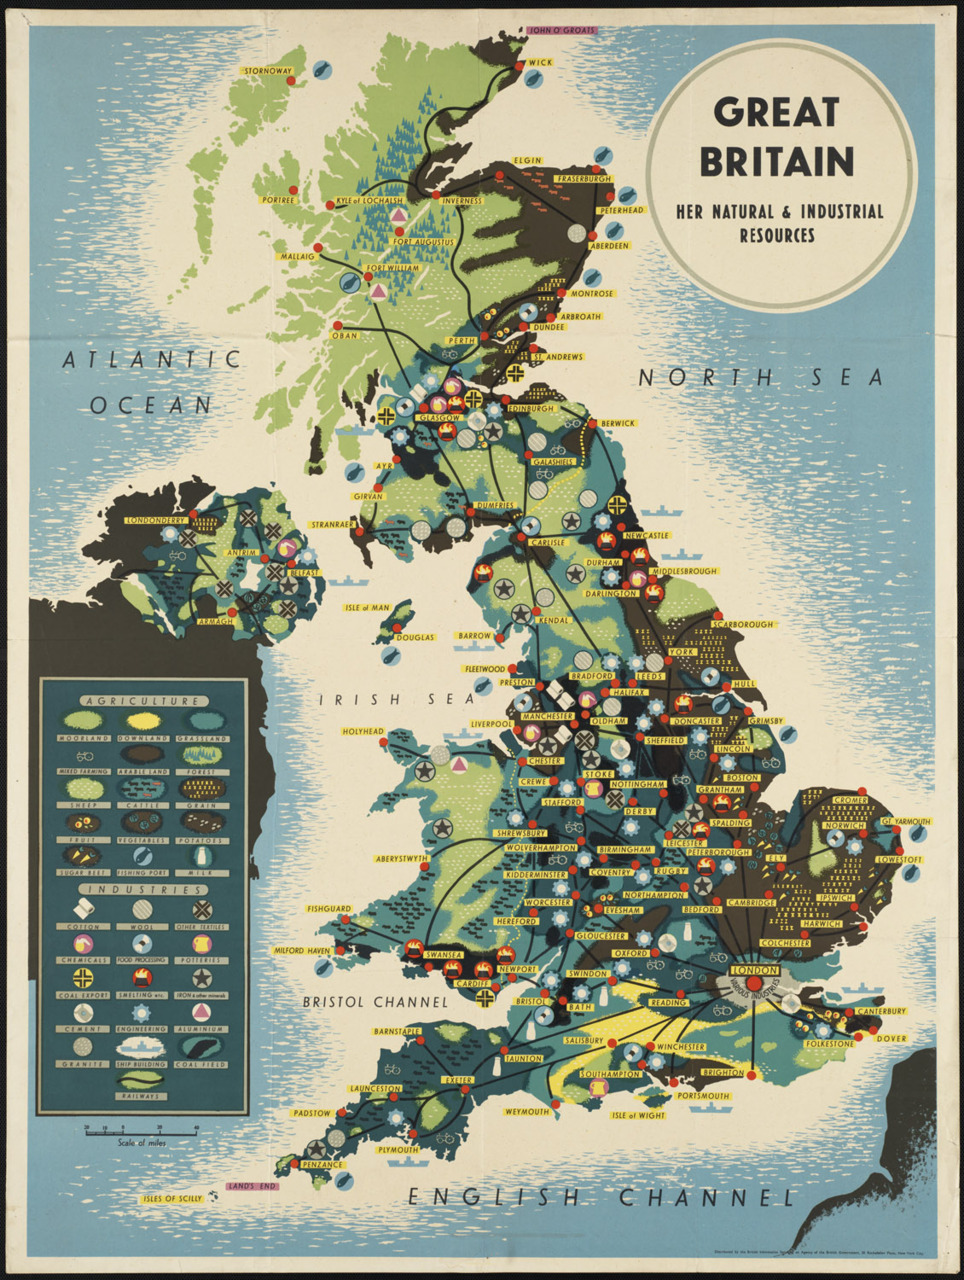 Great Britain. Her natural and industrial resources  Infographic map of Great Britain made in late 1930s, at Boston Public Library:  Title: Great Britain. Her natural and industrial resources Created/Published: New York City : Distributed by the British Information Services, an agency of the British Government Date issued: 1939-1945 (approximate) Physical description: 1 print (poster) : color Summary: Map of Great Britain's resources. Genre: Travel posters; Prints; Maps Notes: Title from item. Location: Boston Public Library, Print Department Rights: Rights status not evaluated  [Link]